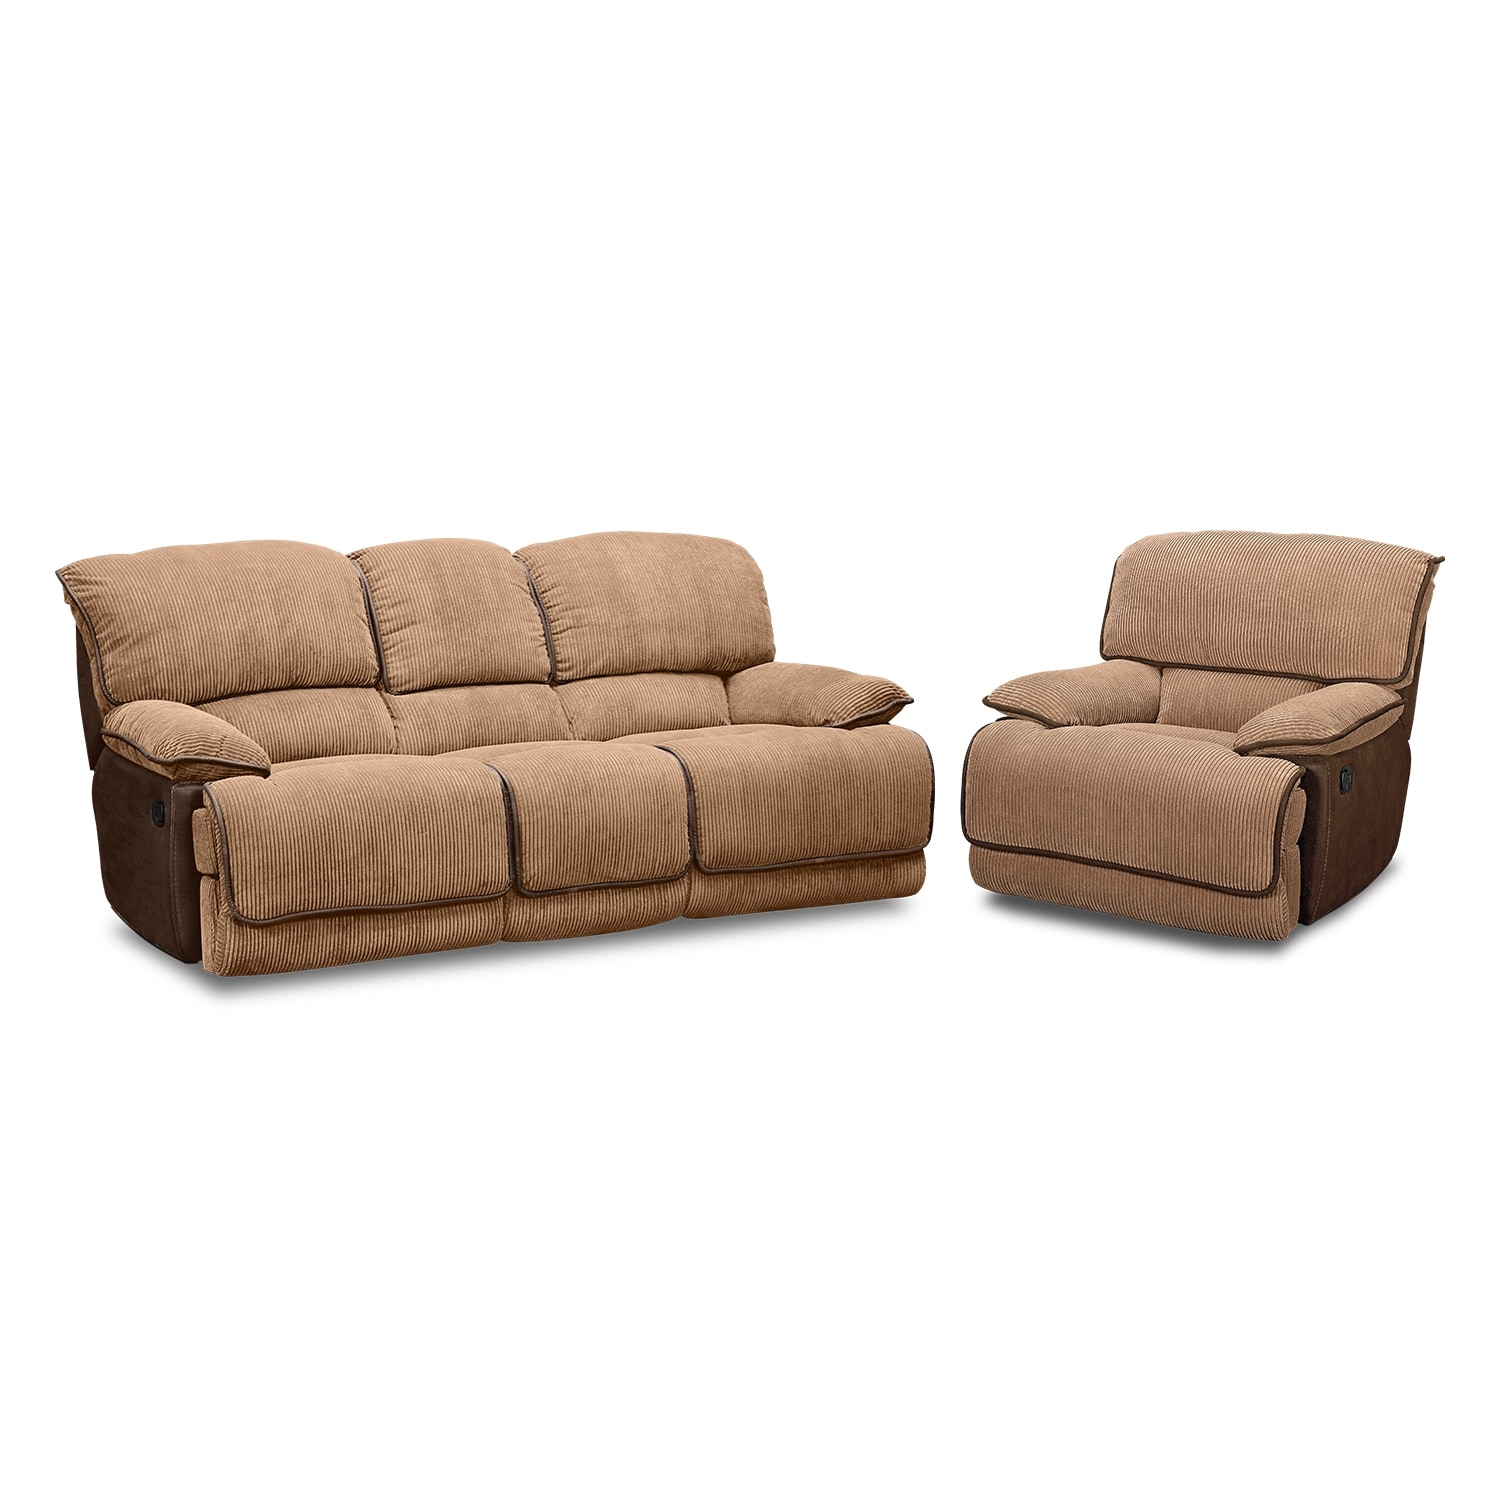 Living Room Furniture - Laguna Reclining Sofa and Glider Recliner Set - Camel